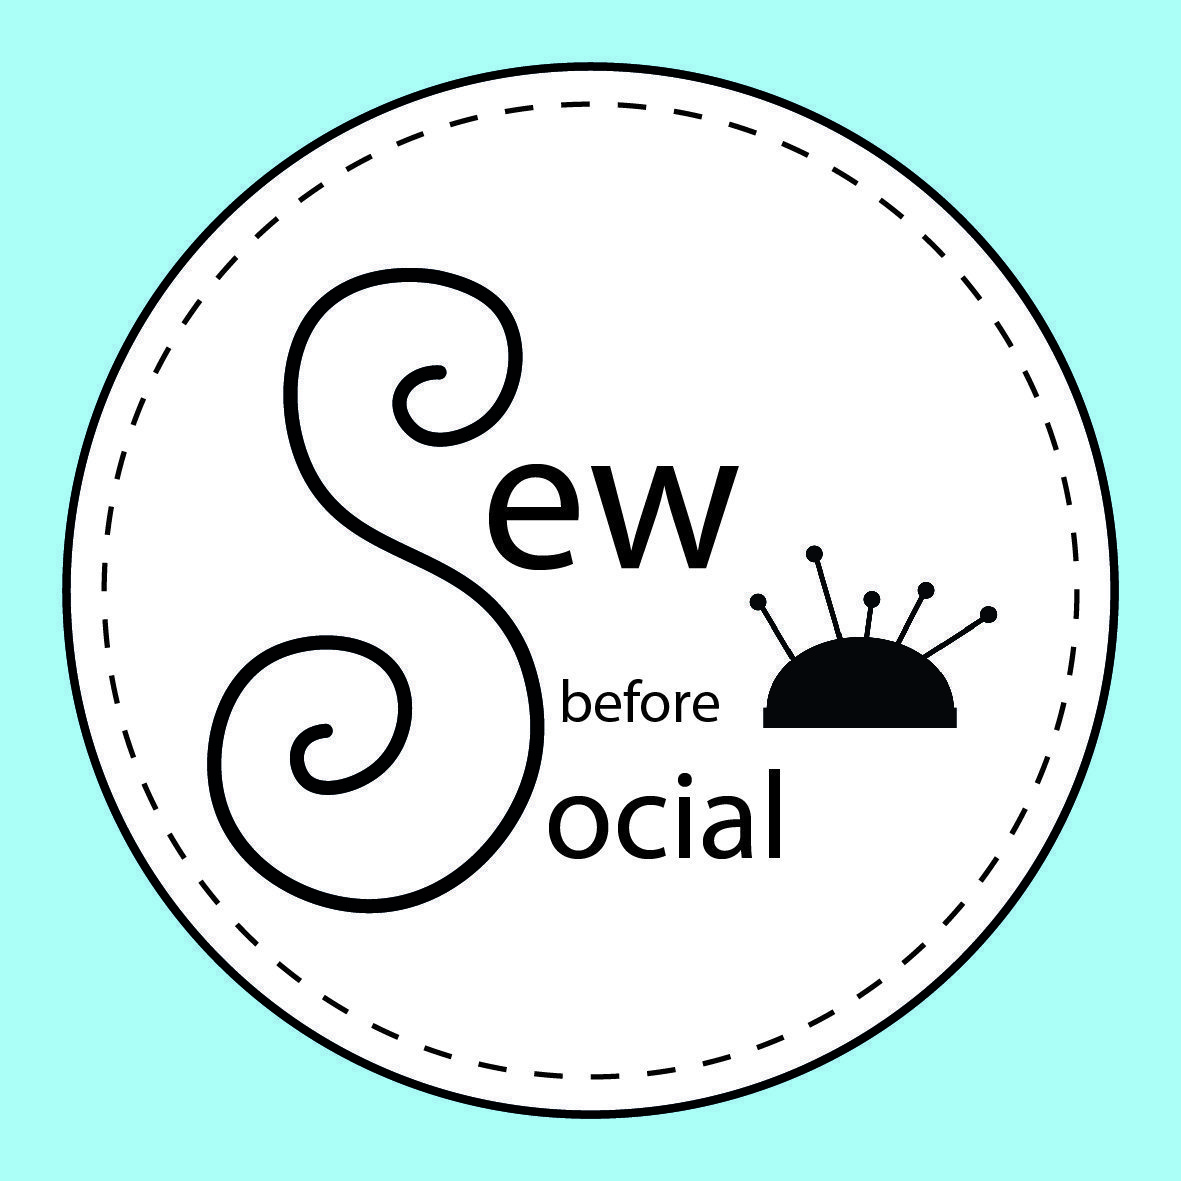 Sew Before Social